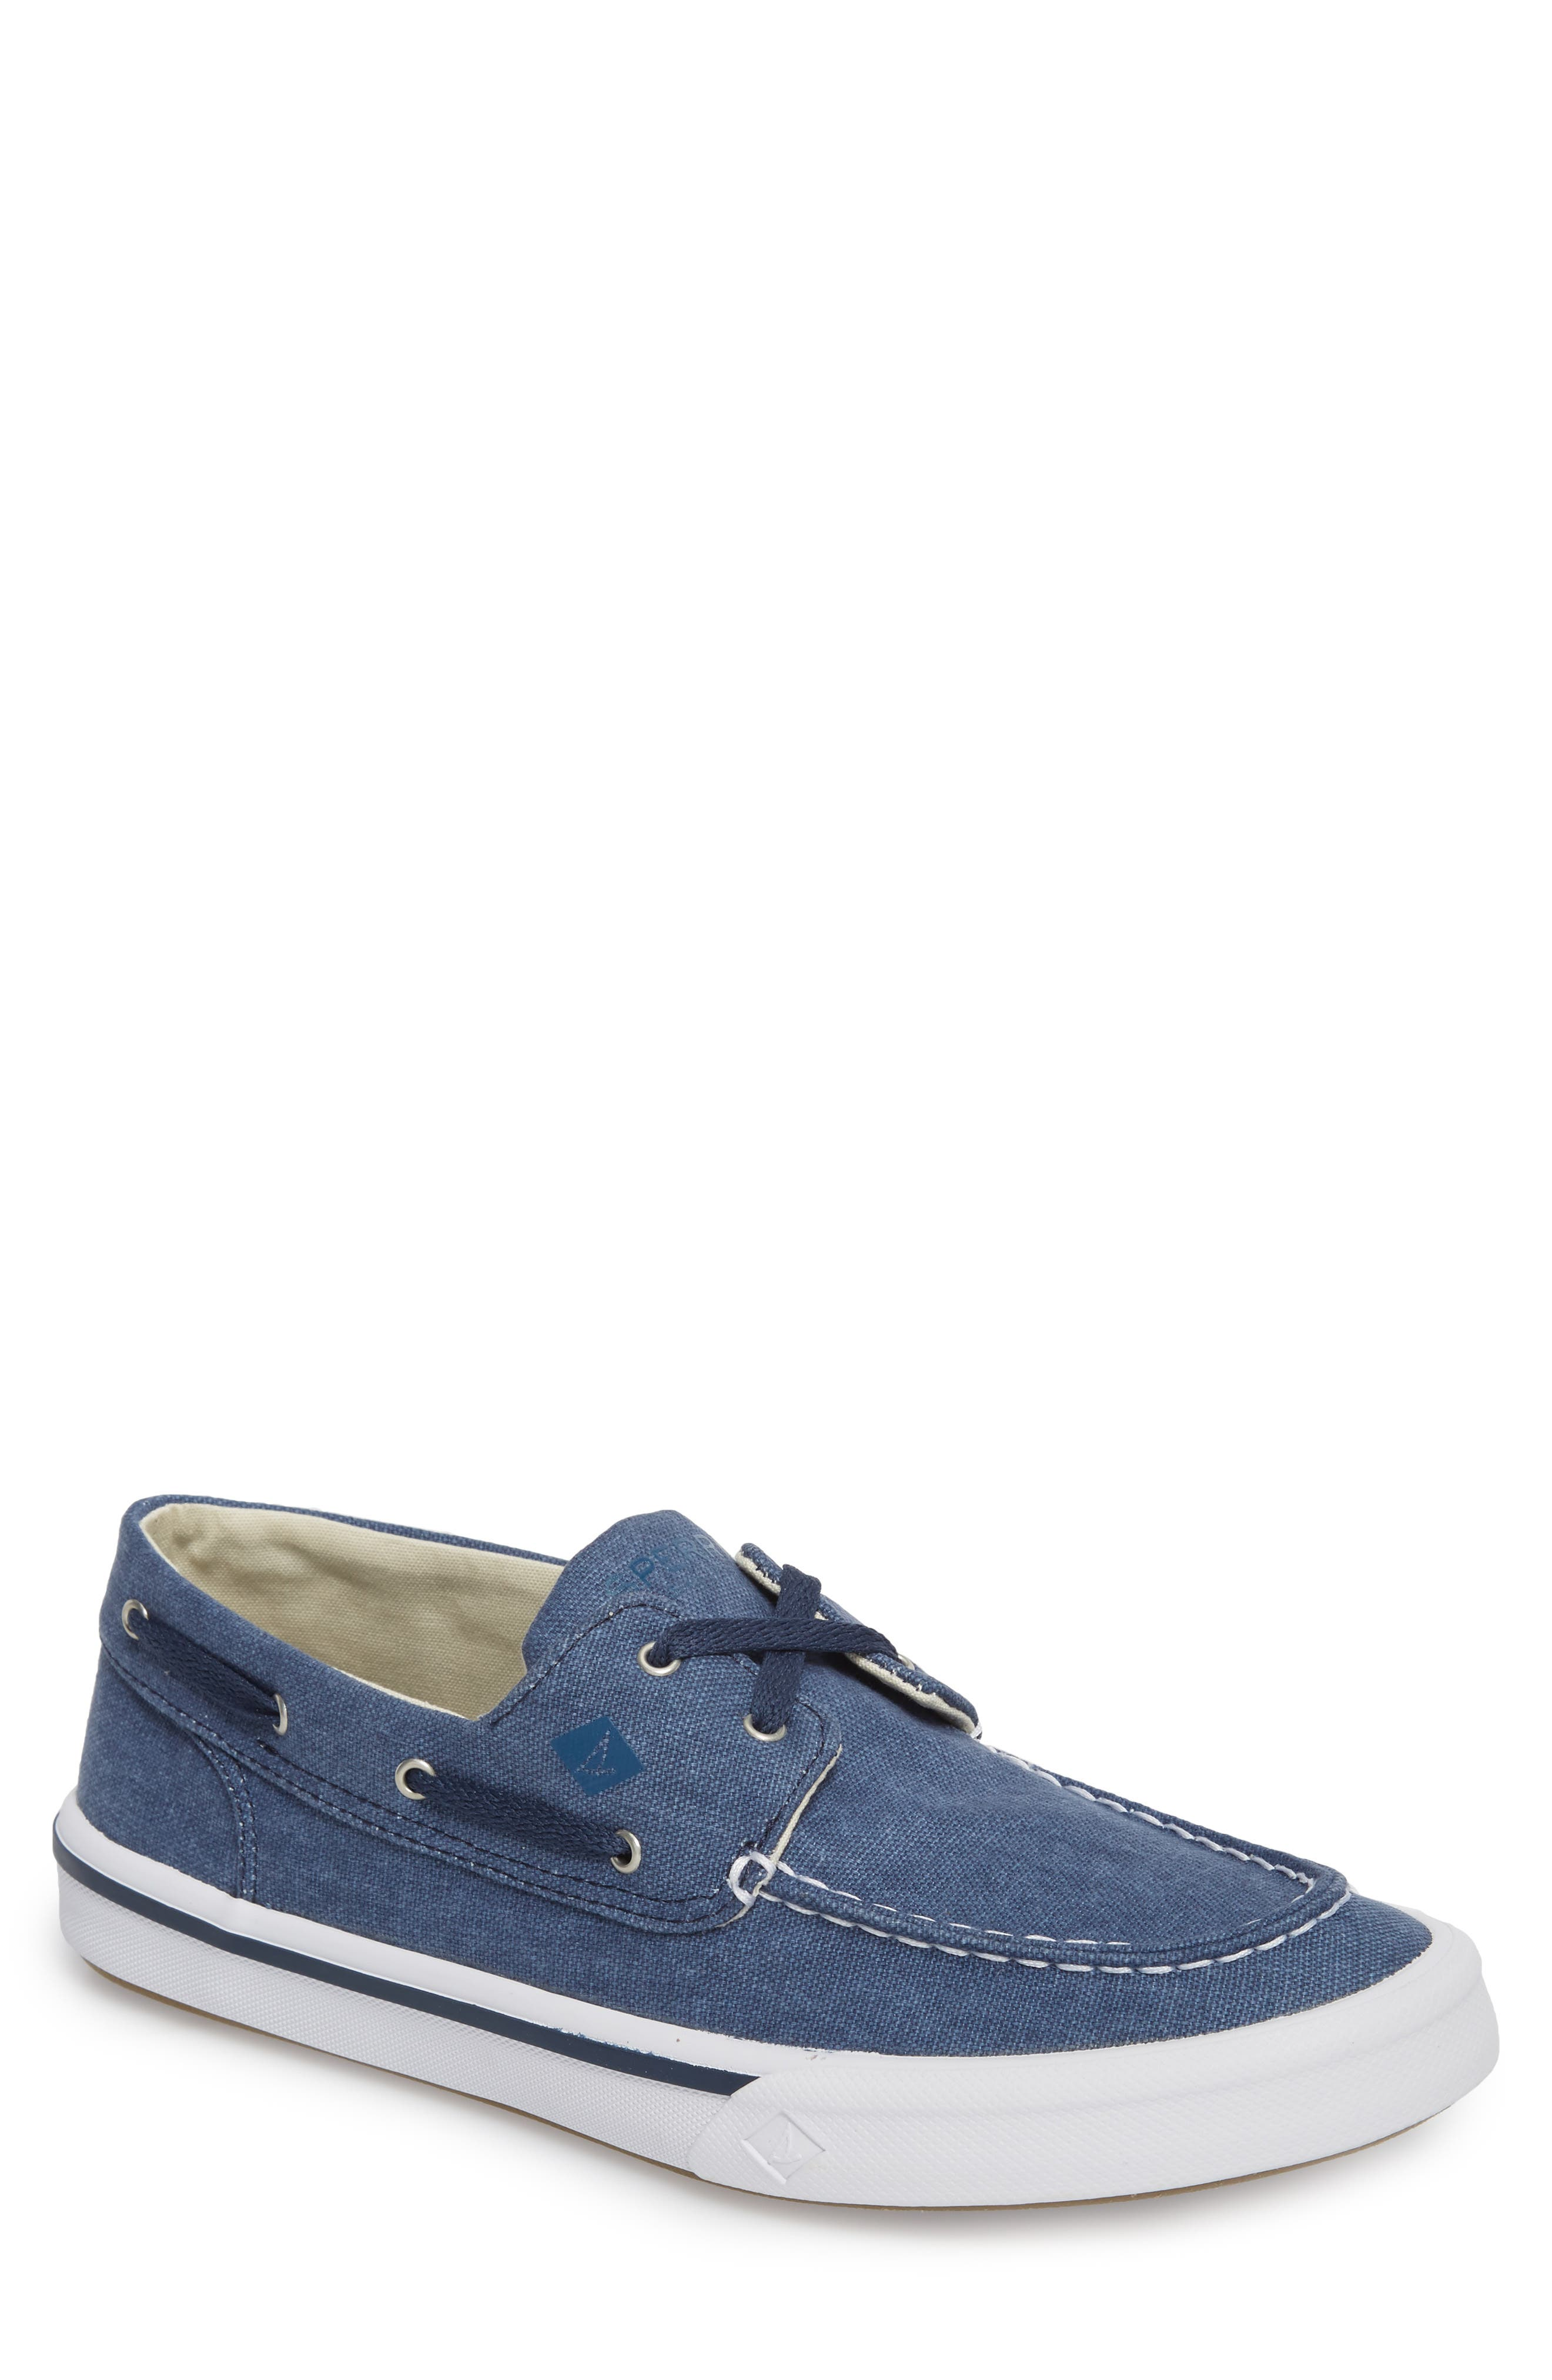 Sperry Striper 2 Boat Shoe (Men)